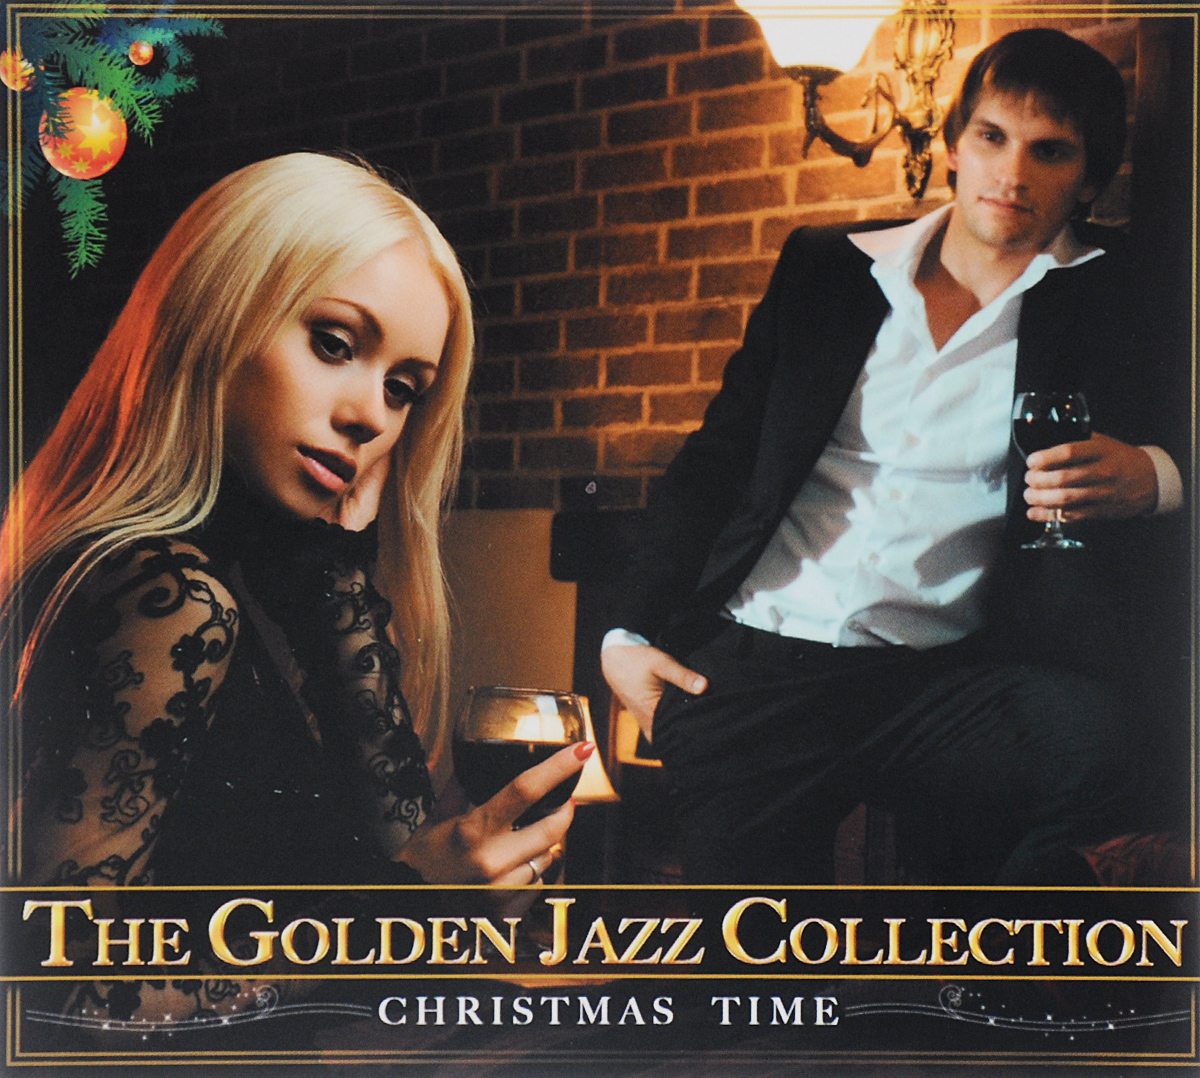 Club Des Belugas,Tape Five,Pauline London,Айан Маккензи,Анна Лука,Бренда Бойкин The Golden Jazz Collection. Christmas Time moyou london плитка для стемпинга time traveller collection 01 back to the 60 s